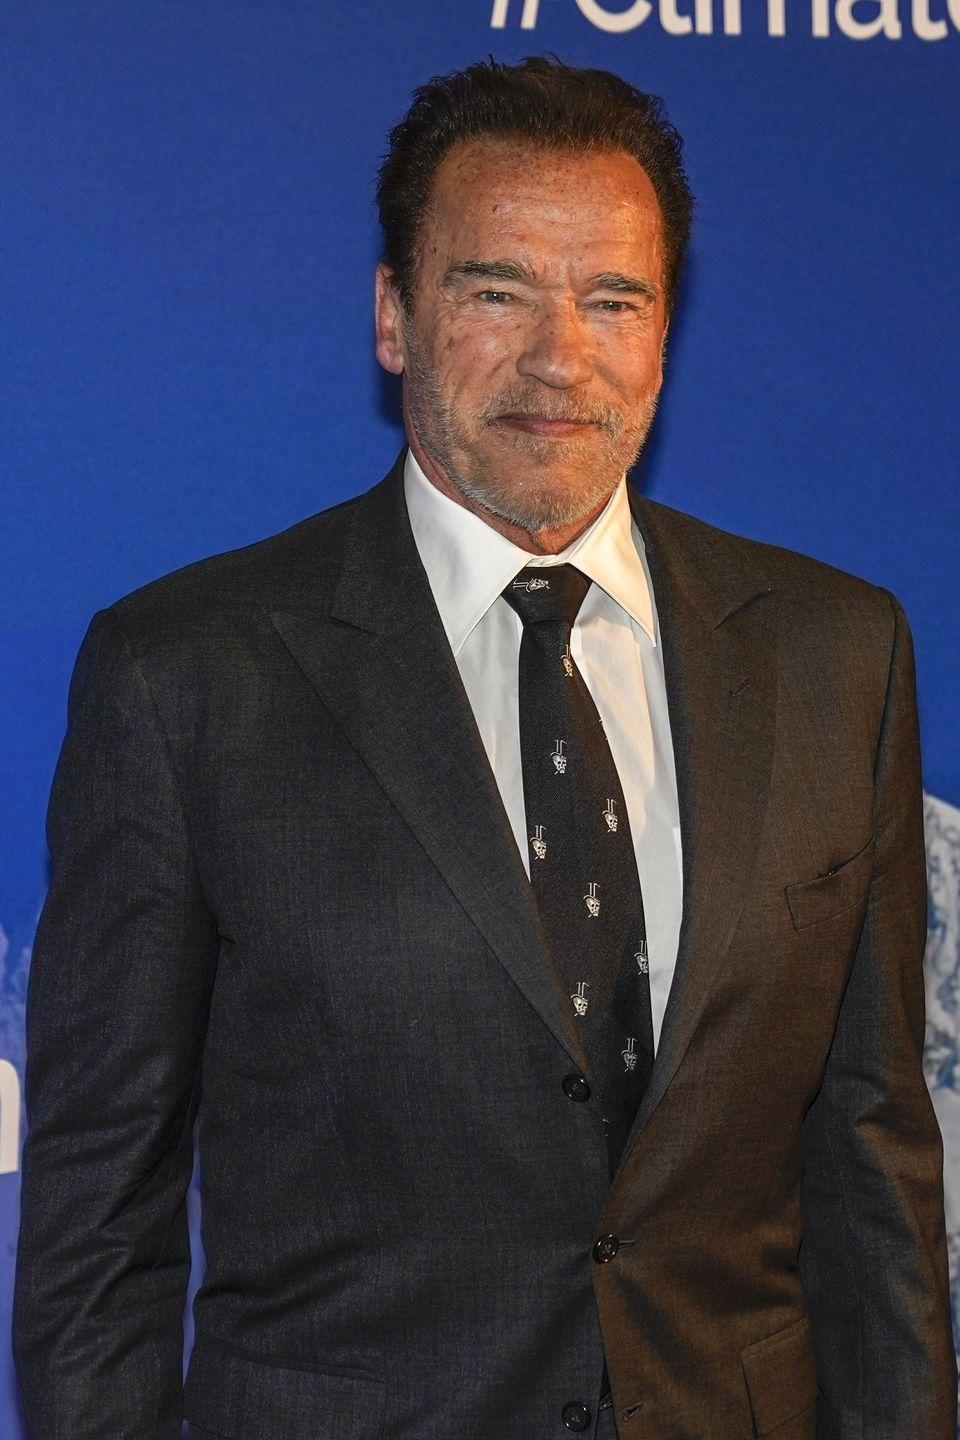 "<p><strong>Birthday: </strong>July 30</p><p><strong>Age Turning: </strong>73</p><p>In March, the action star and former governor of California made a <a href=""https://www.oprahmag.com/entertainment/a31928374/arnold-schwarzenegger-million-dollars-donation-coronavirus-relief/"" rel=""nofollow noopener"" target=""_blank"" data-ylk=""slk:generous $1 million donation to coronavirus relief."" class=""link rapid-noclick-resp"">generous $1 million donation to coronavirus relief.</a> <br></p>"